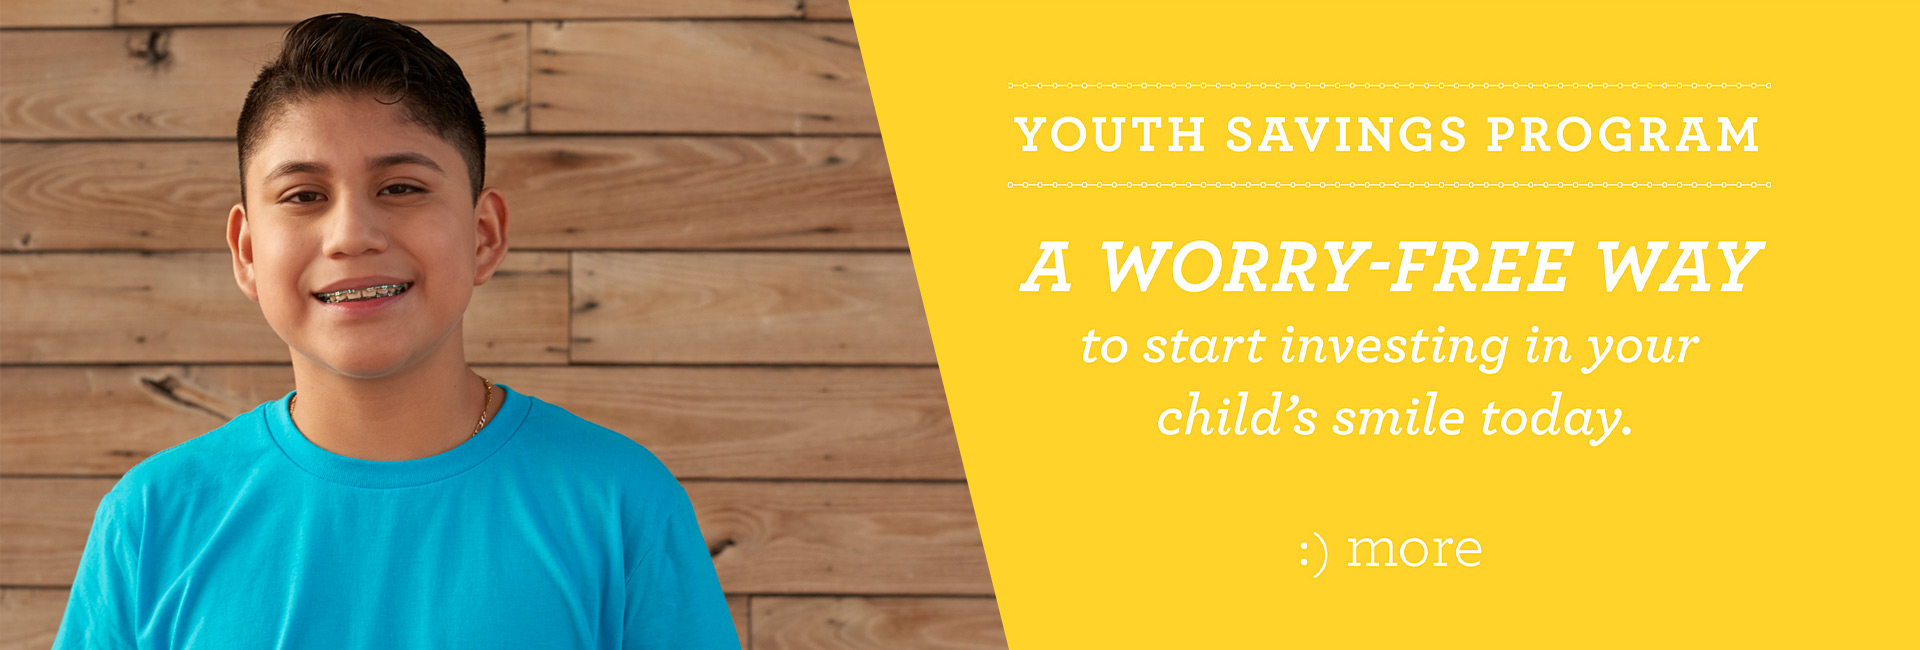 youth savings program